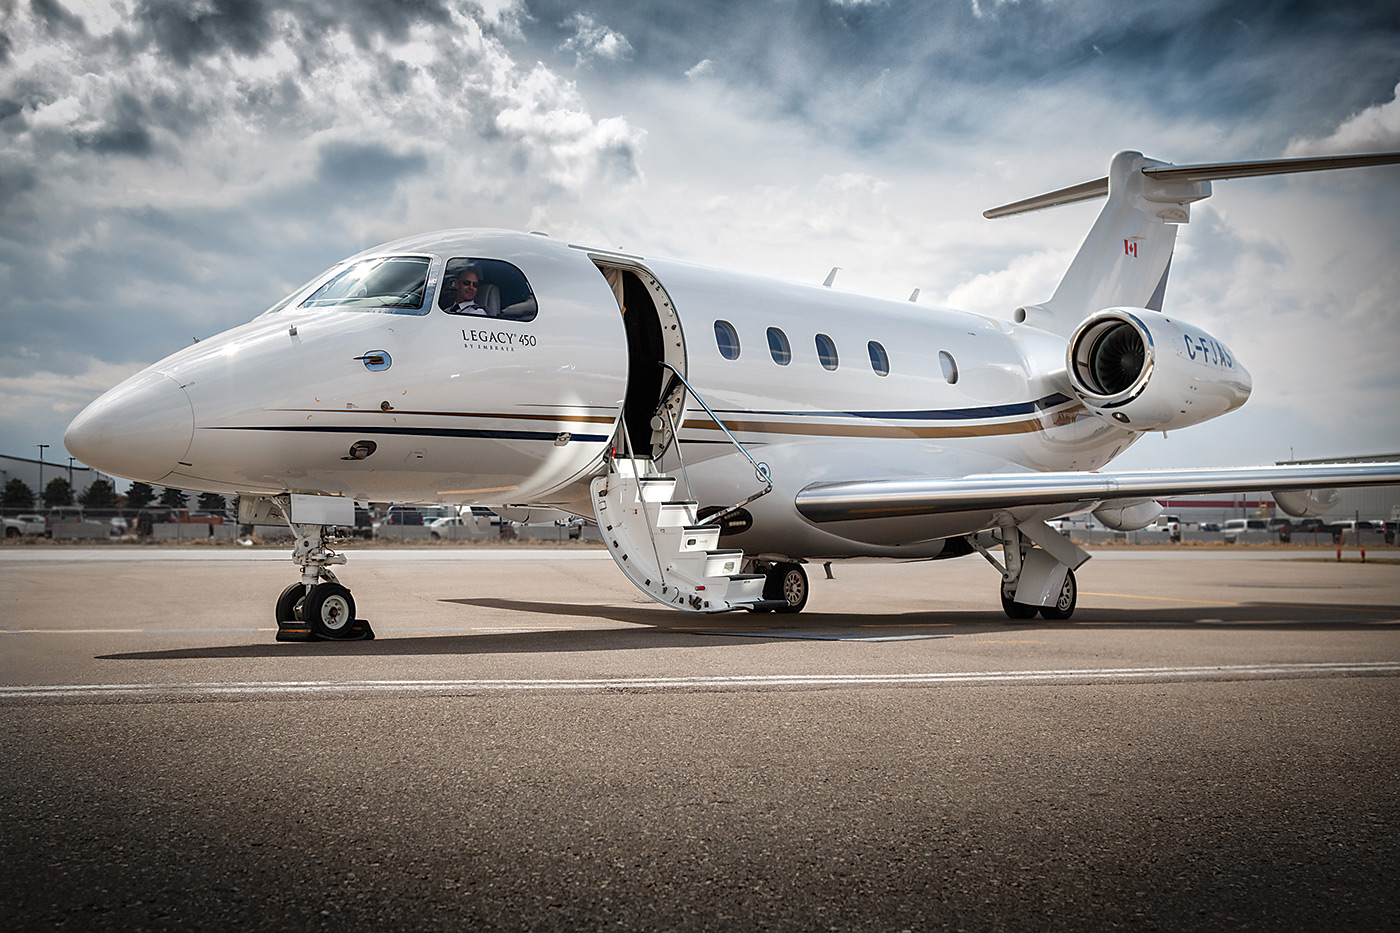 At AirSprint, the Legacy 450 carries a purchase price of US$550,000 for a one-32nd share (25 hours of access annually). The fractional owner also pays $88,000 a year in management fees and a rate of $3,800 for each occupied flying hour. AirSprint Photo